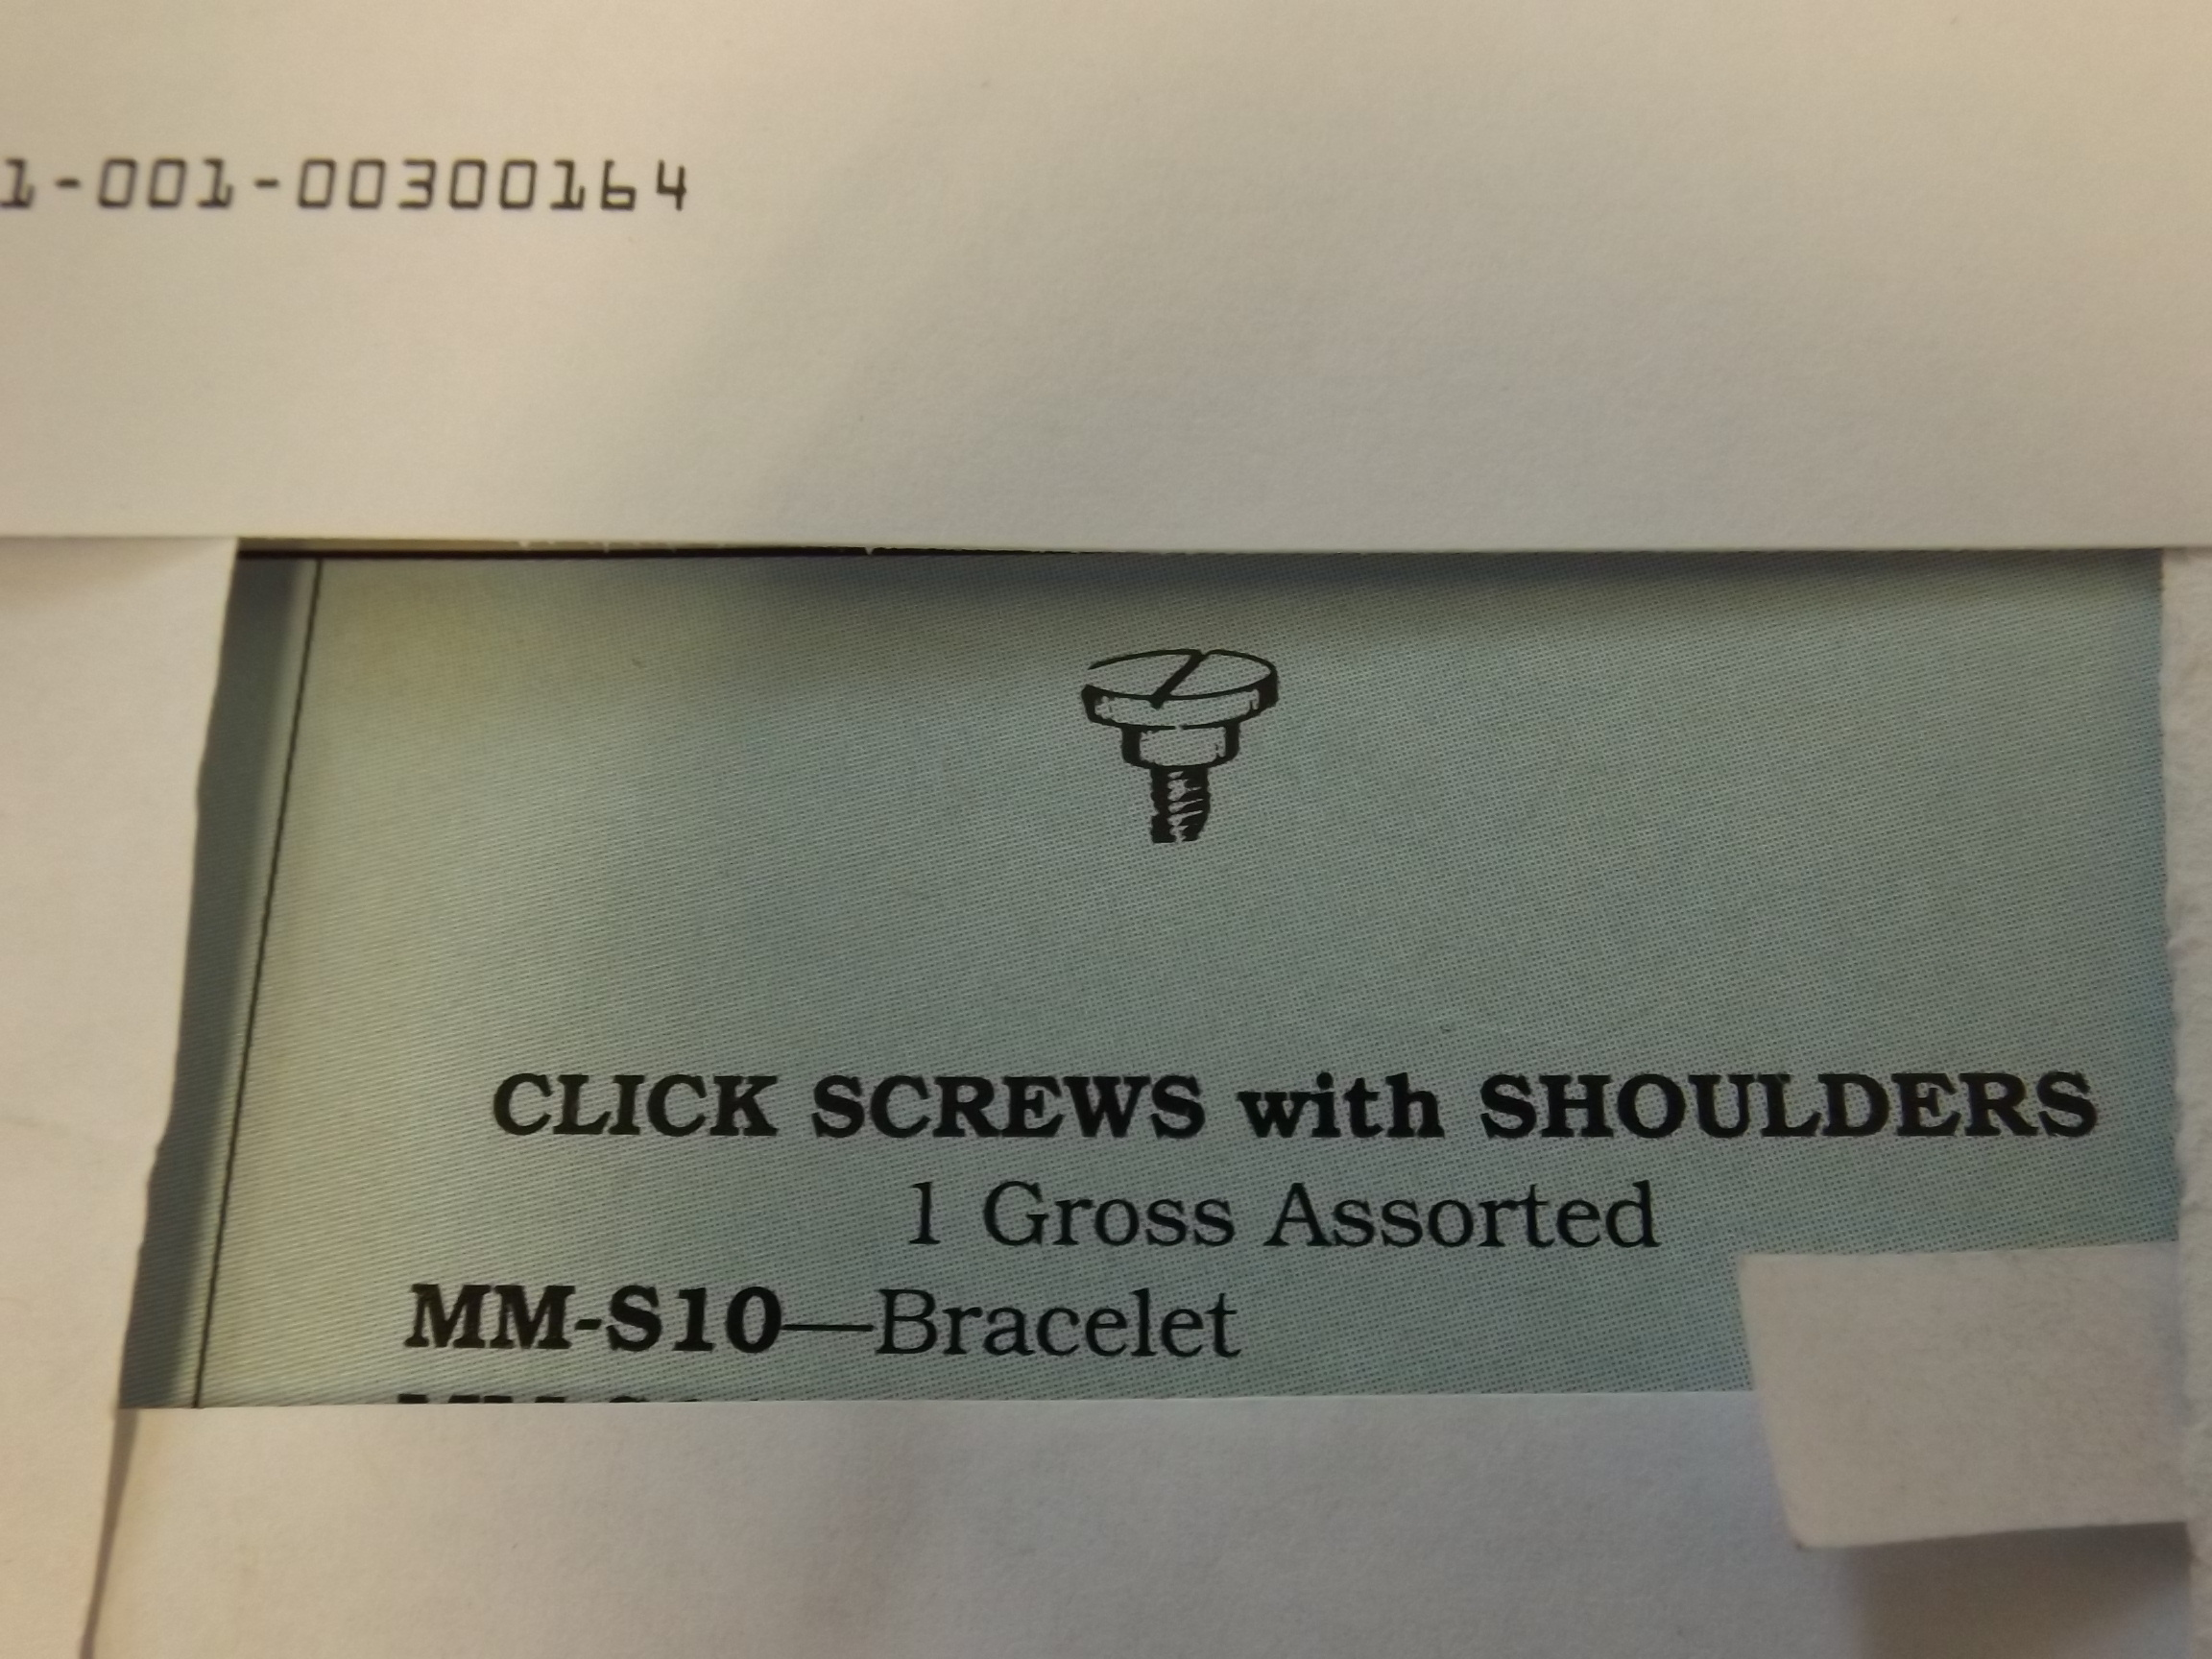 MM-S10 Click Screws, with shoulder-Bracelet - Bestfit - 1 Only!